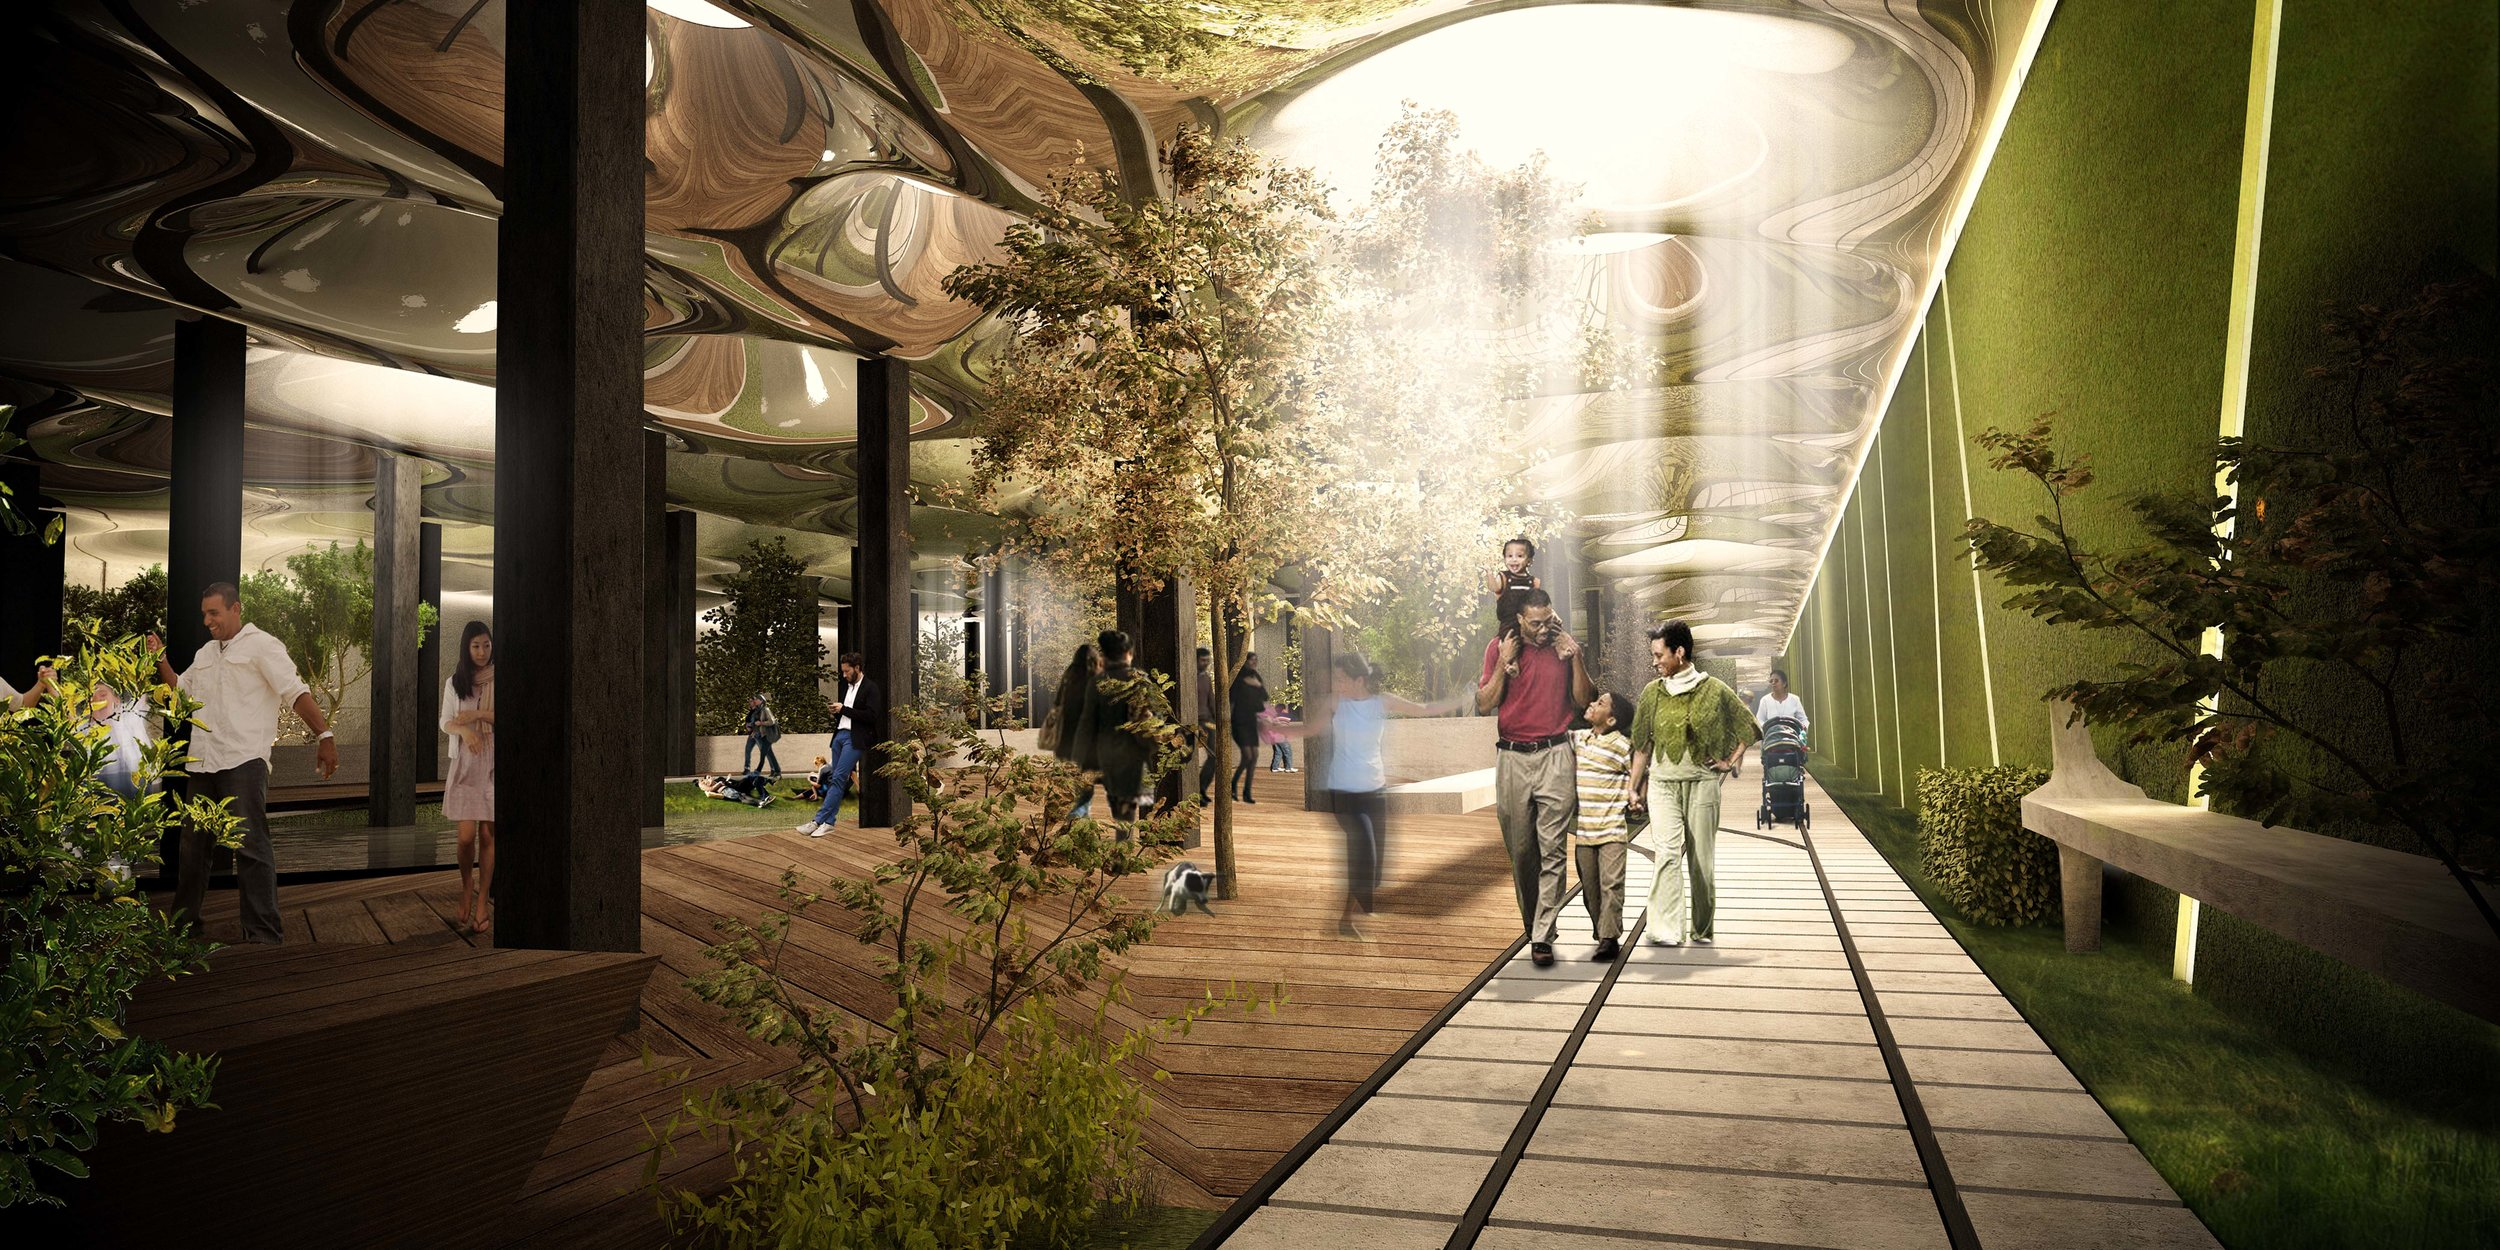 The project will see an abandoned trolley terminal in Manhattan's Lower East Side turned into the world's first underground park.